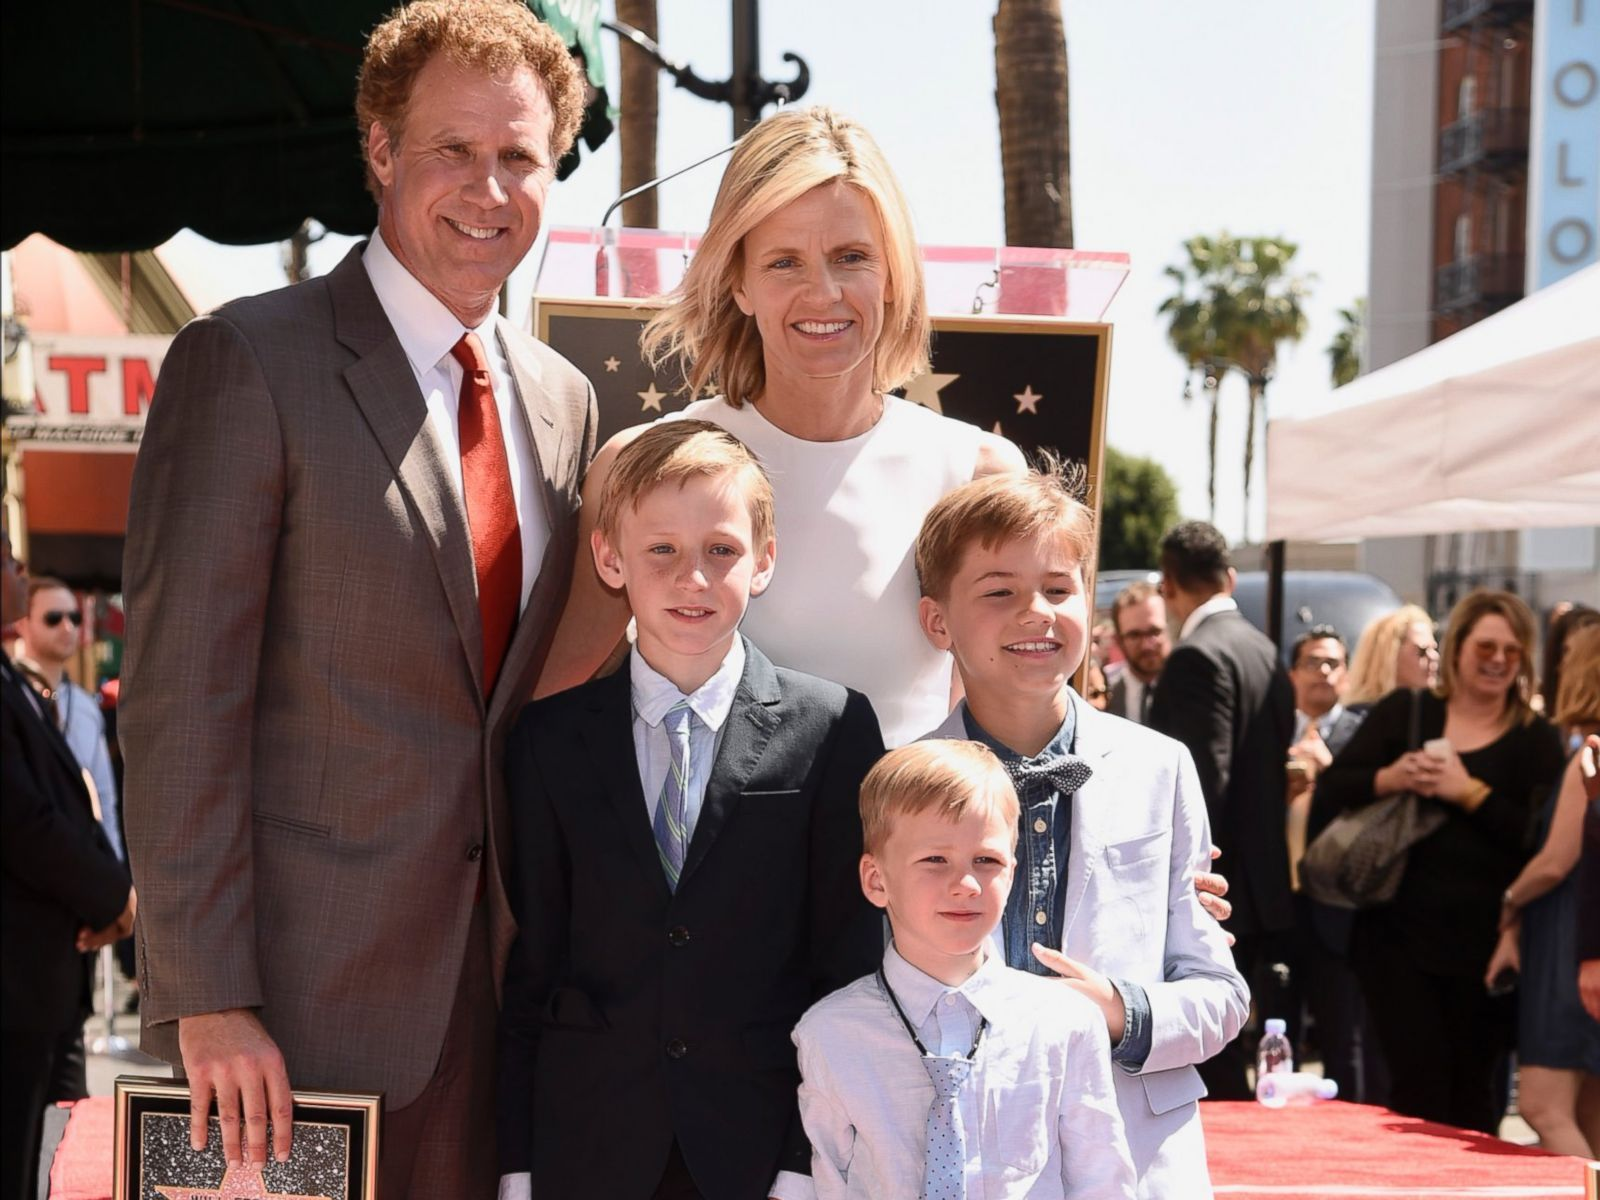 Will Ferrell Family Photos, Wife, Son, Father, Mother, Age, Net Worth